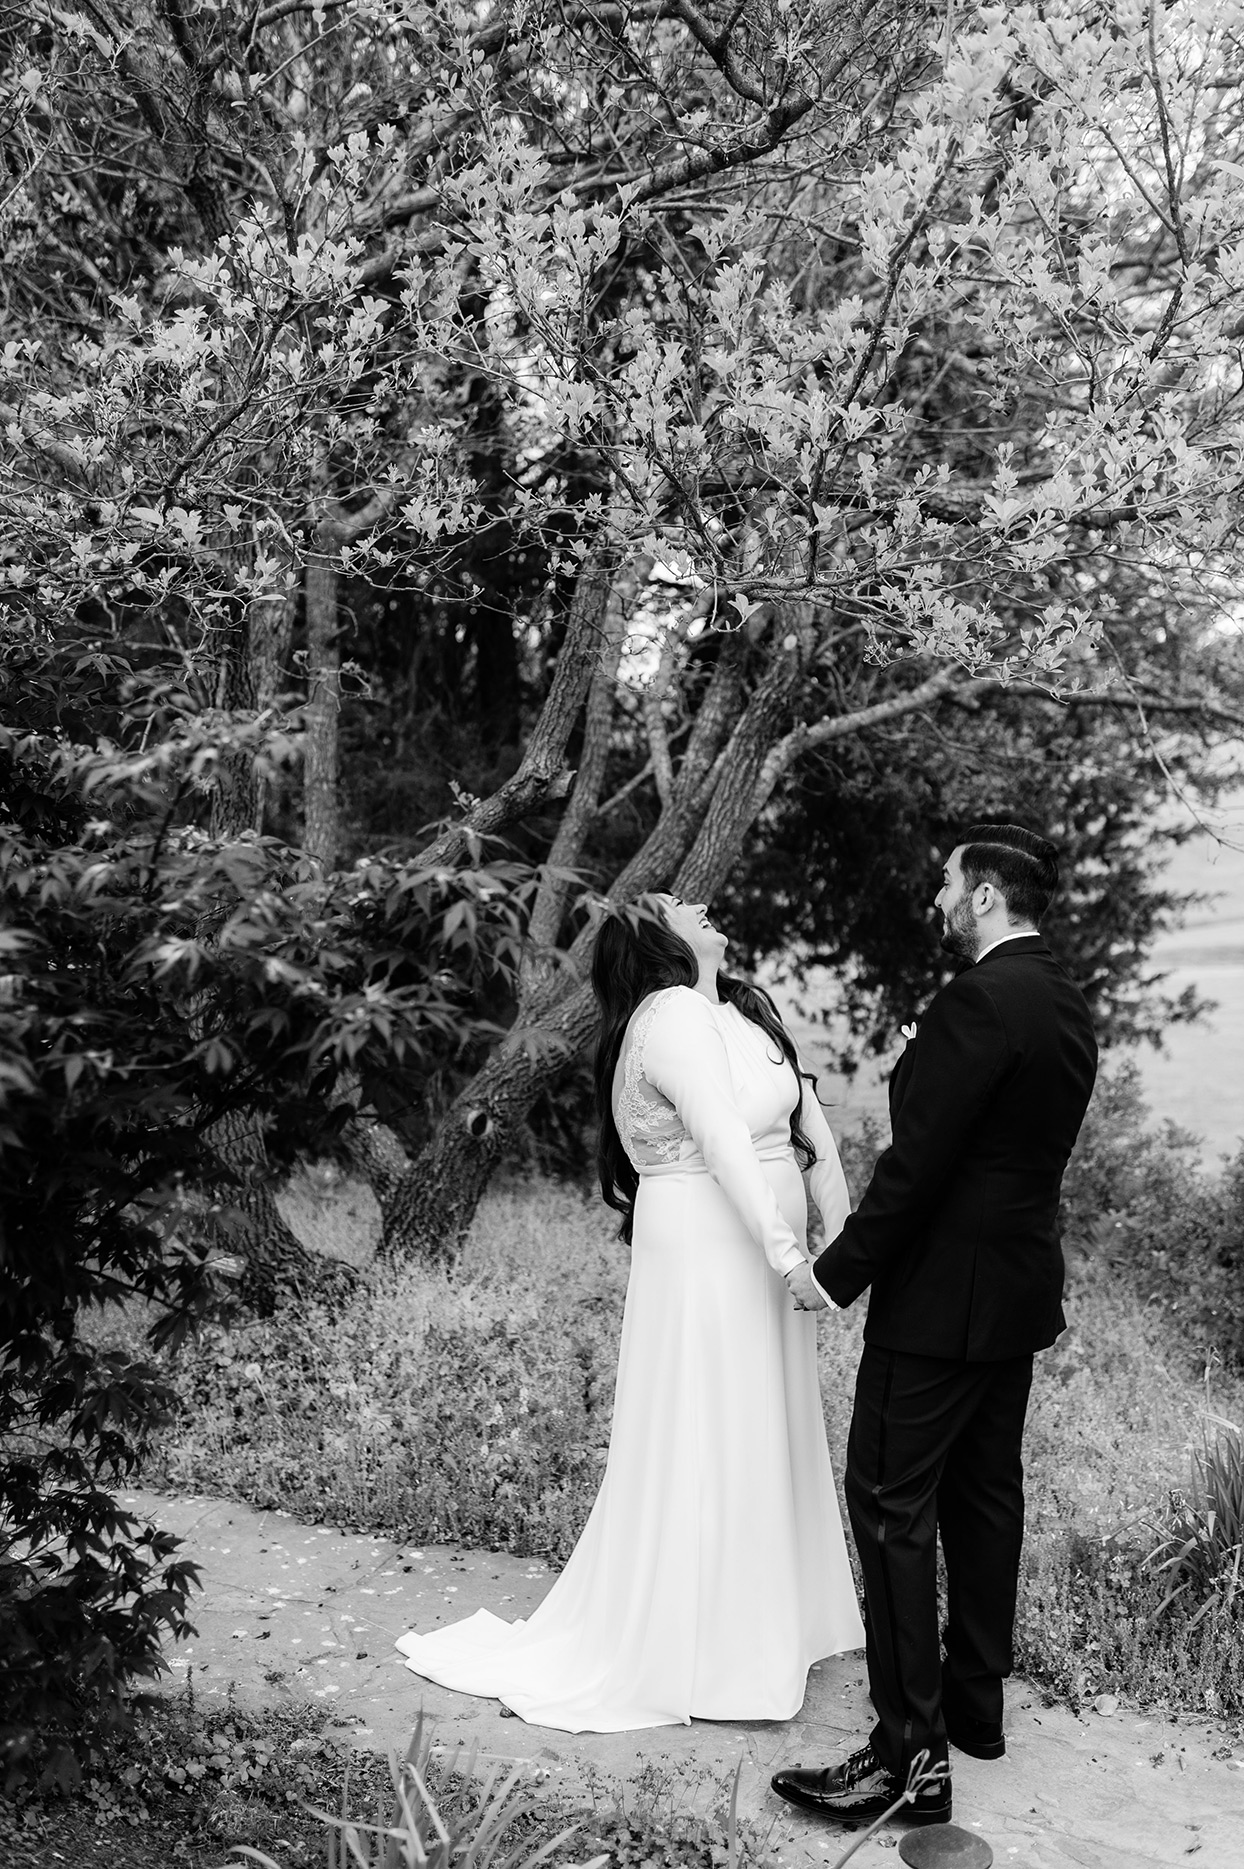 Bride and groom laughing together in garden